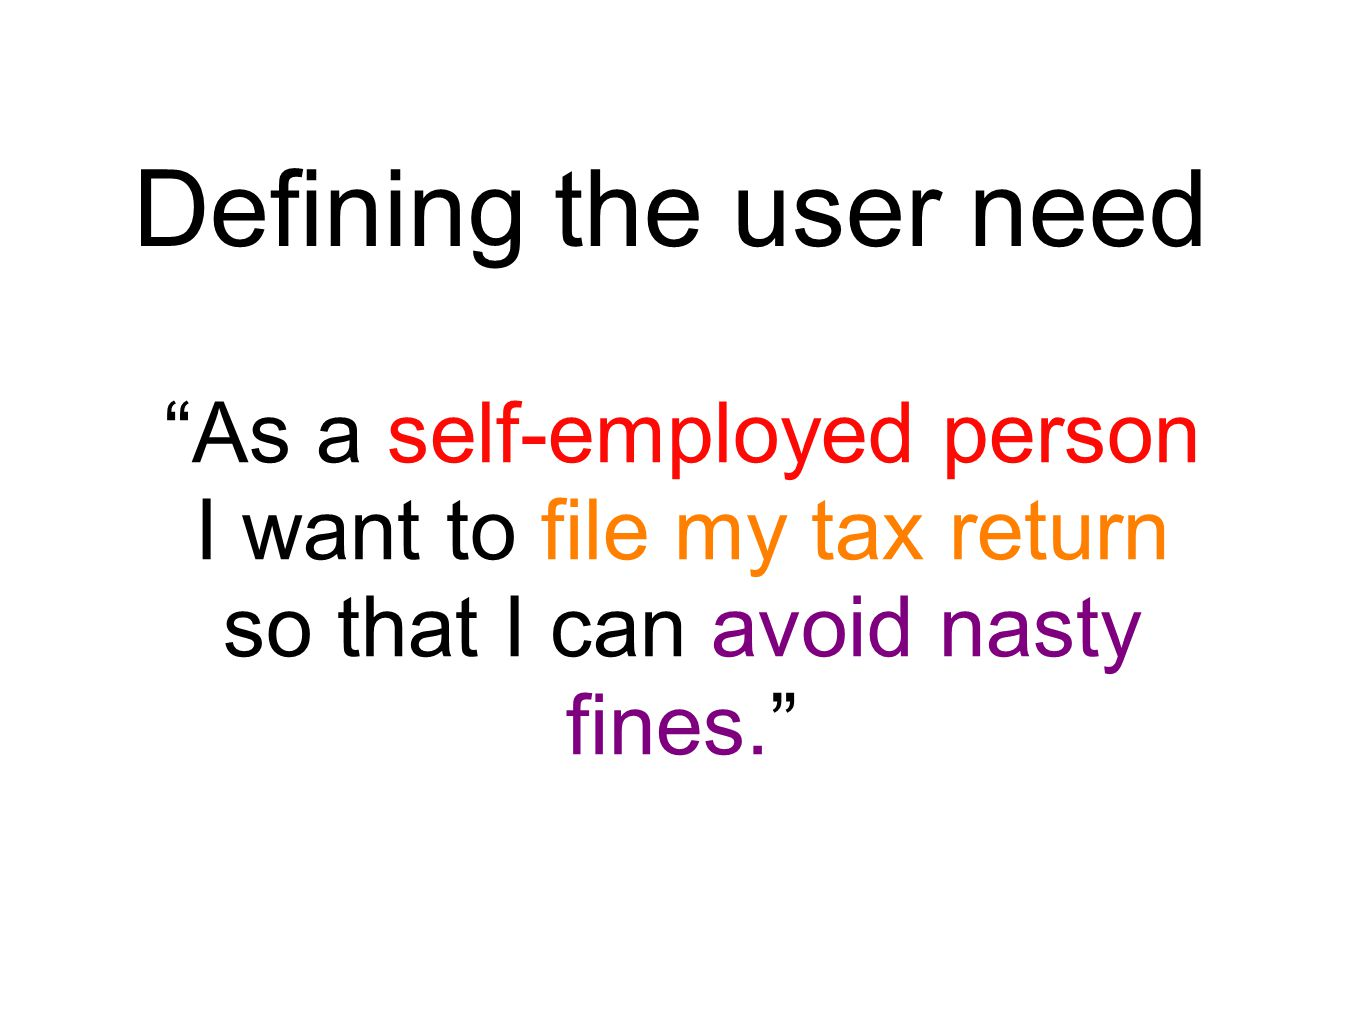 Defining the user need As a self-employed person I want to file my tax return so that I can avoid nasty fines.